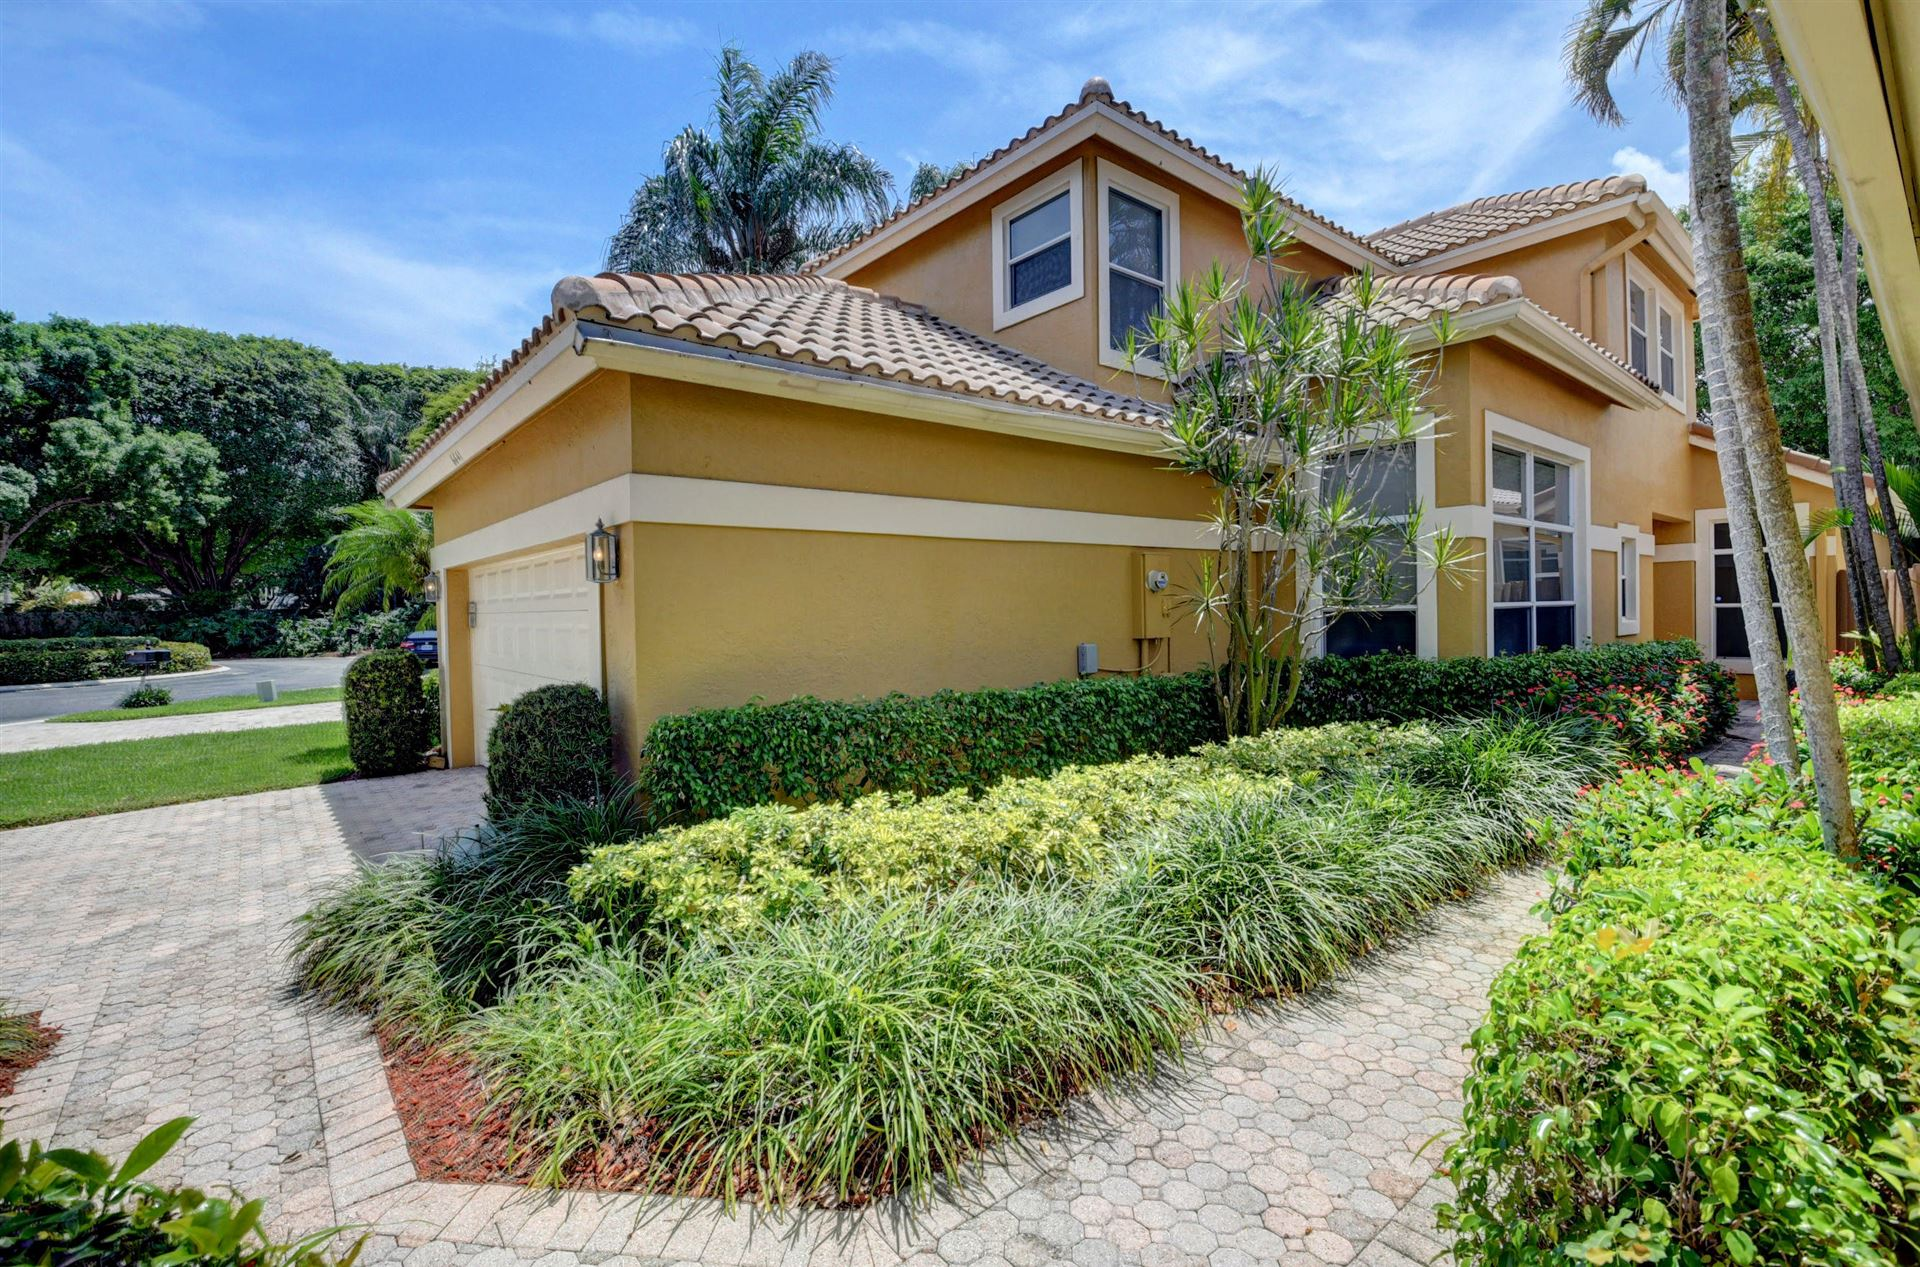 6641 NW 26th Way, Boca Raton, FL 33496 - MLS#: RX-10713125